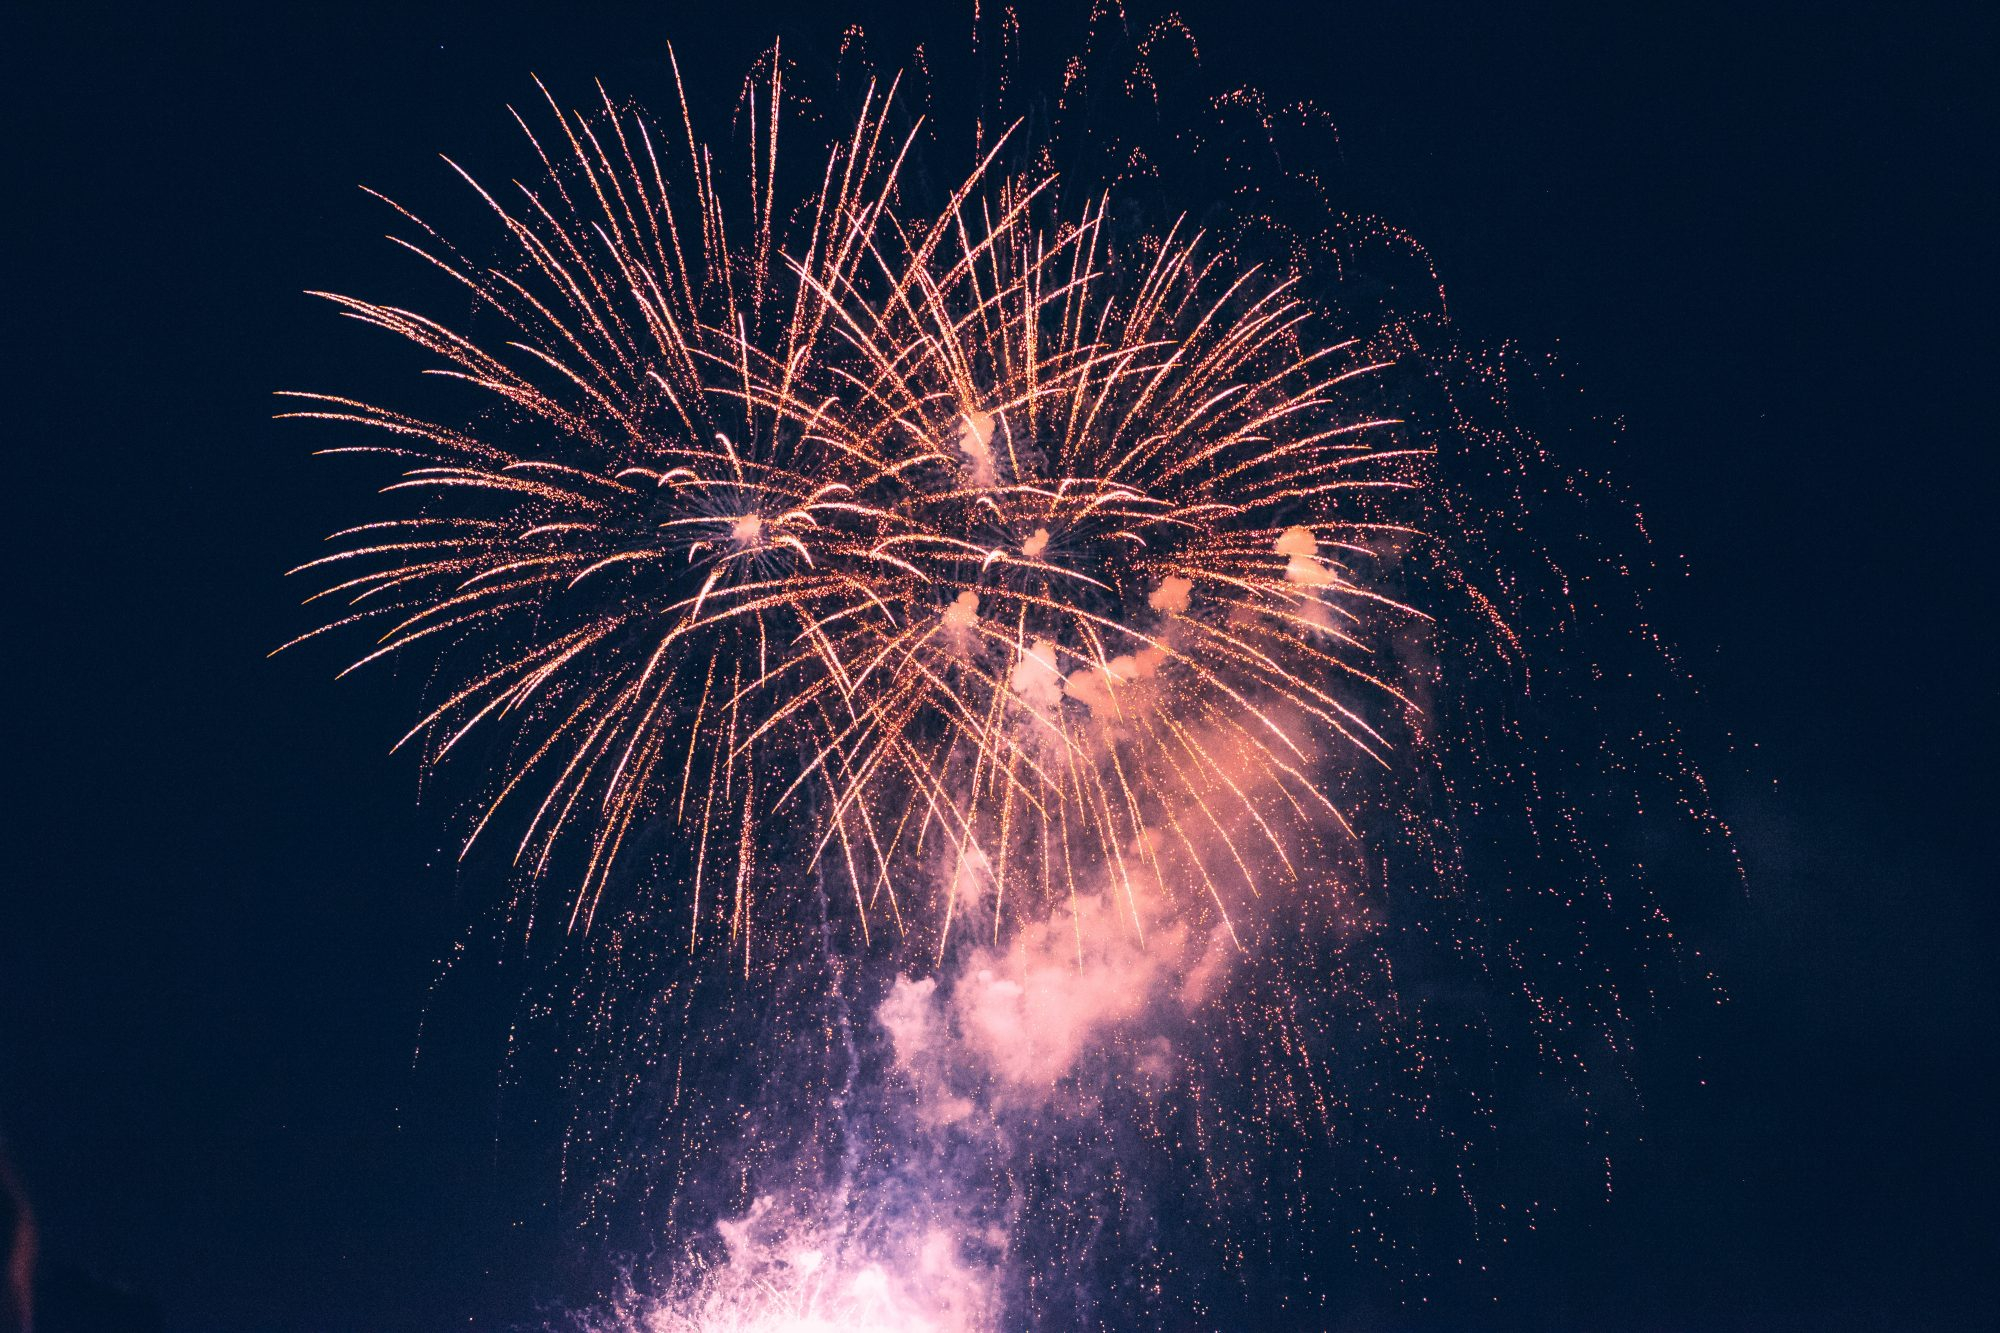 Fireworks At Midnight - Visit Long Beach Peninsula with regard to Long Beach Wa Events Calendar 2021